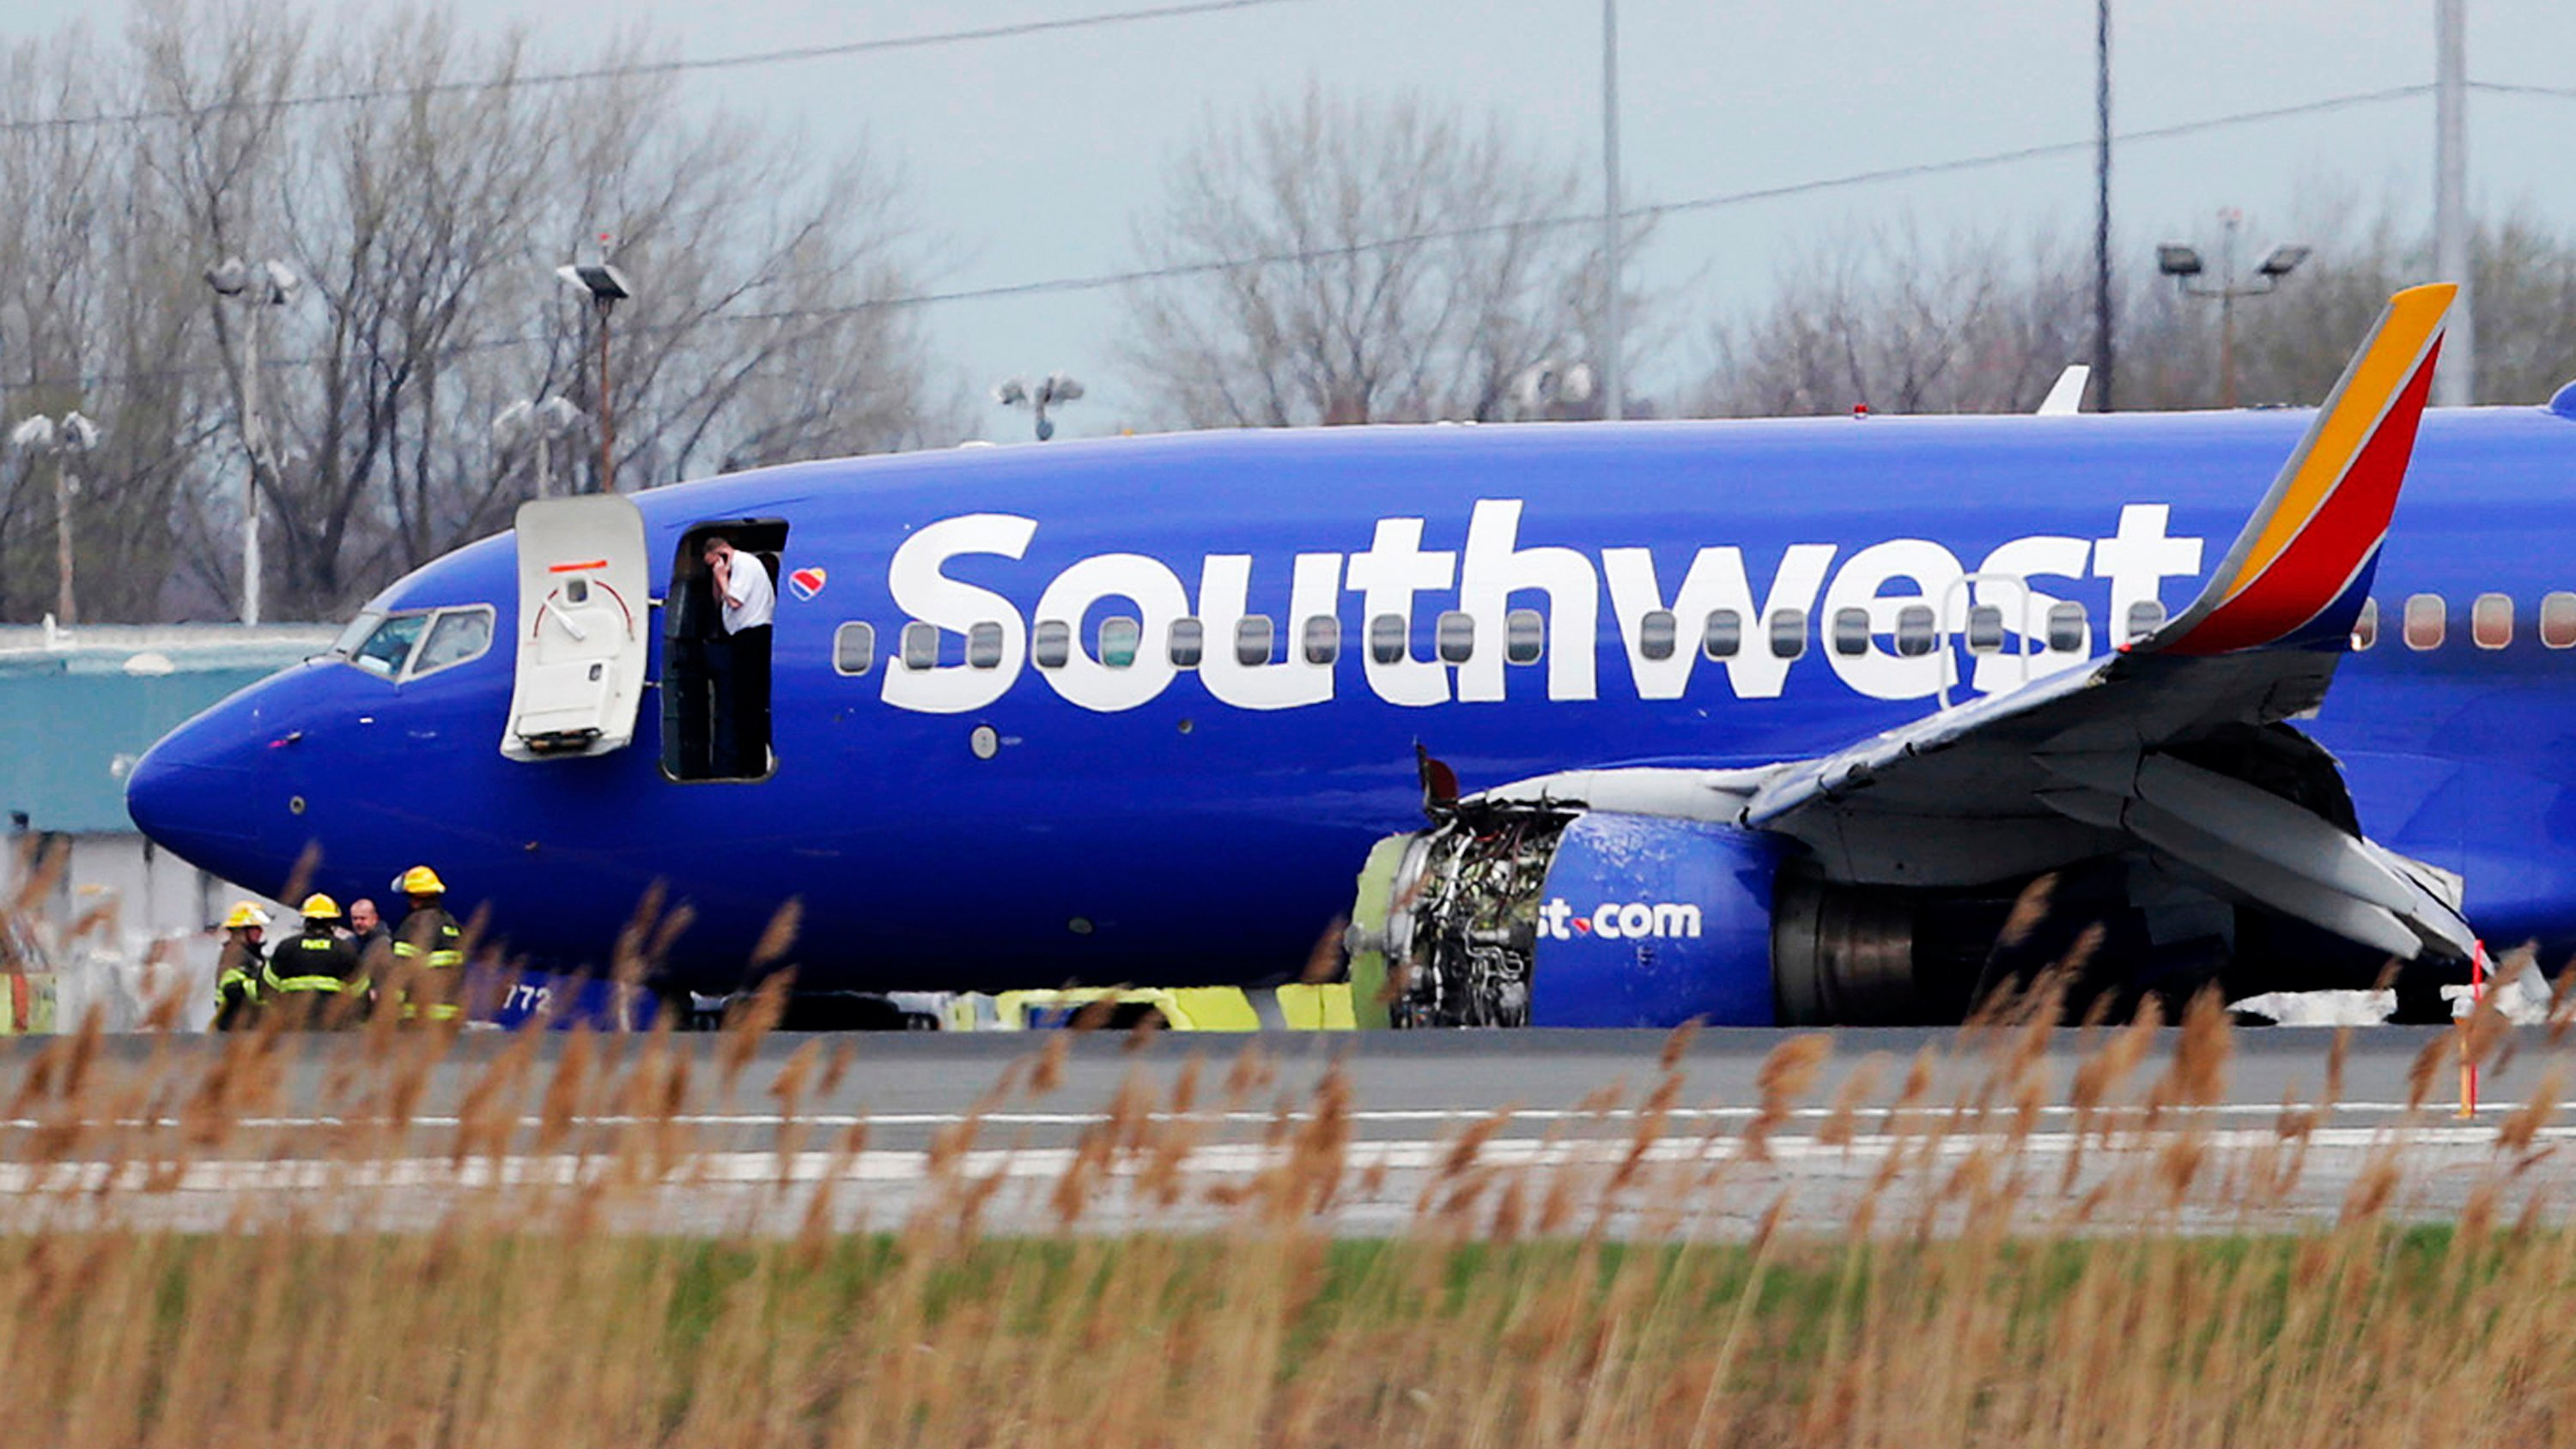 Montana native tried to save passenger sucked out of Southwest flight